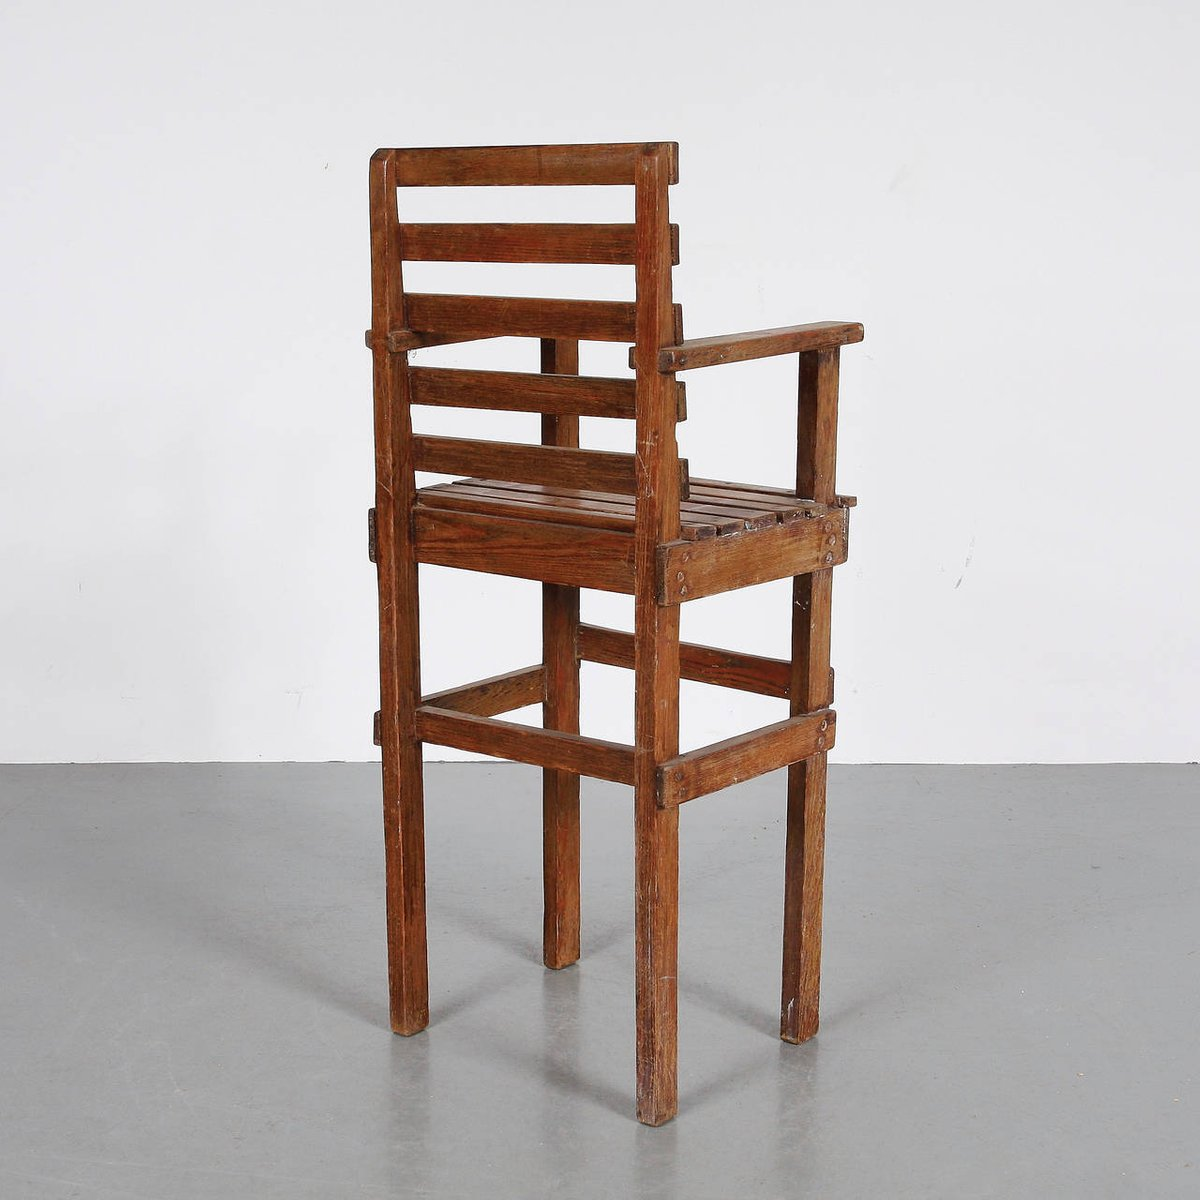 Modernist Dutch Children 39 S Chair 1950s For Sale At Pamono